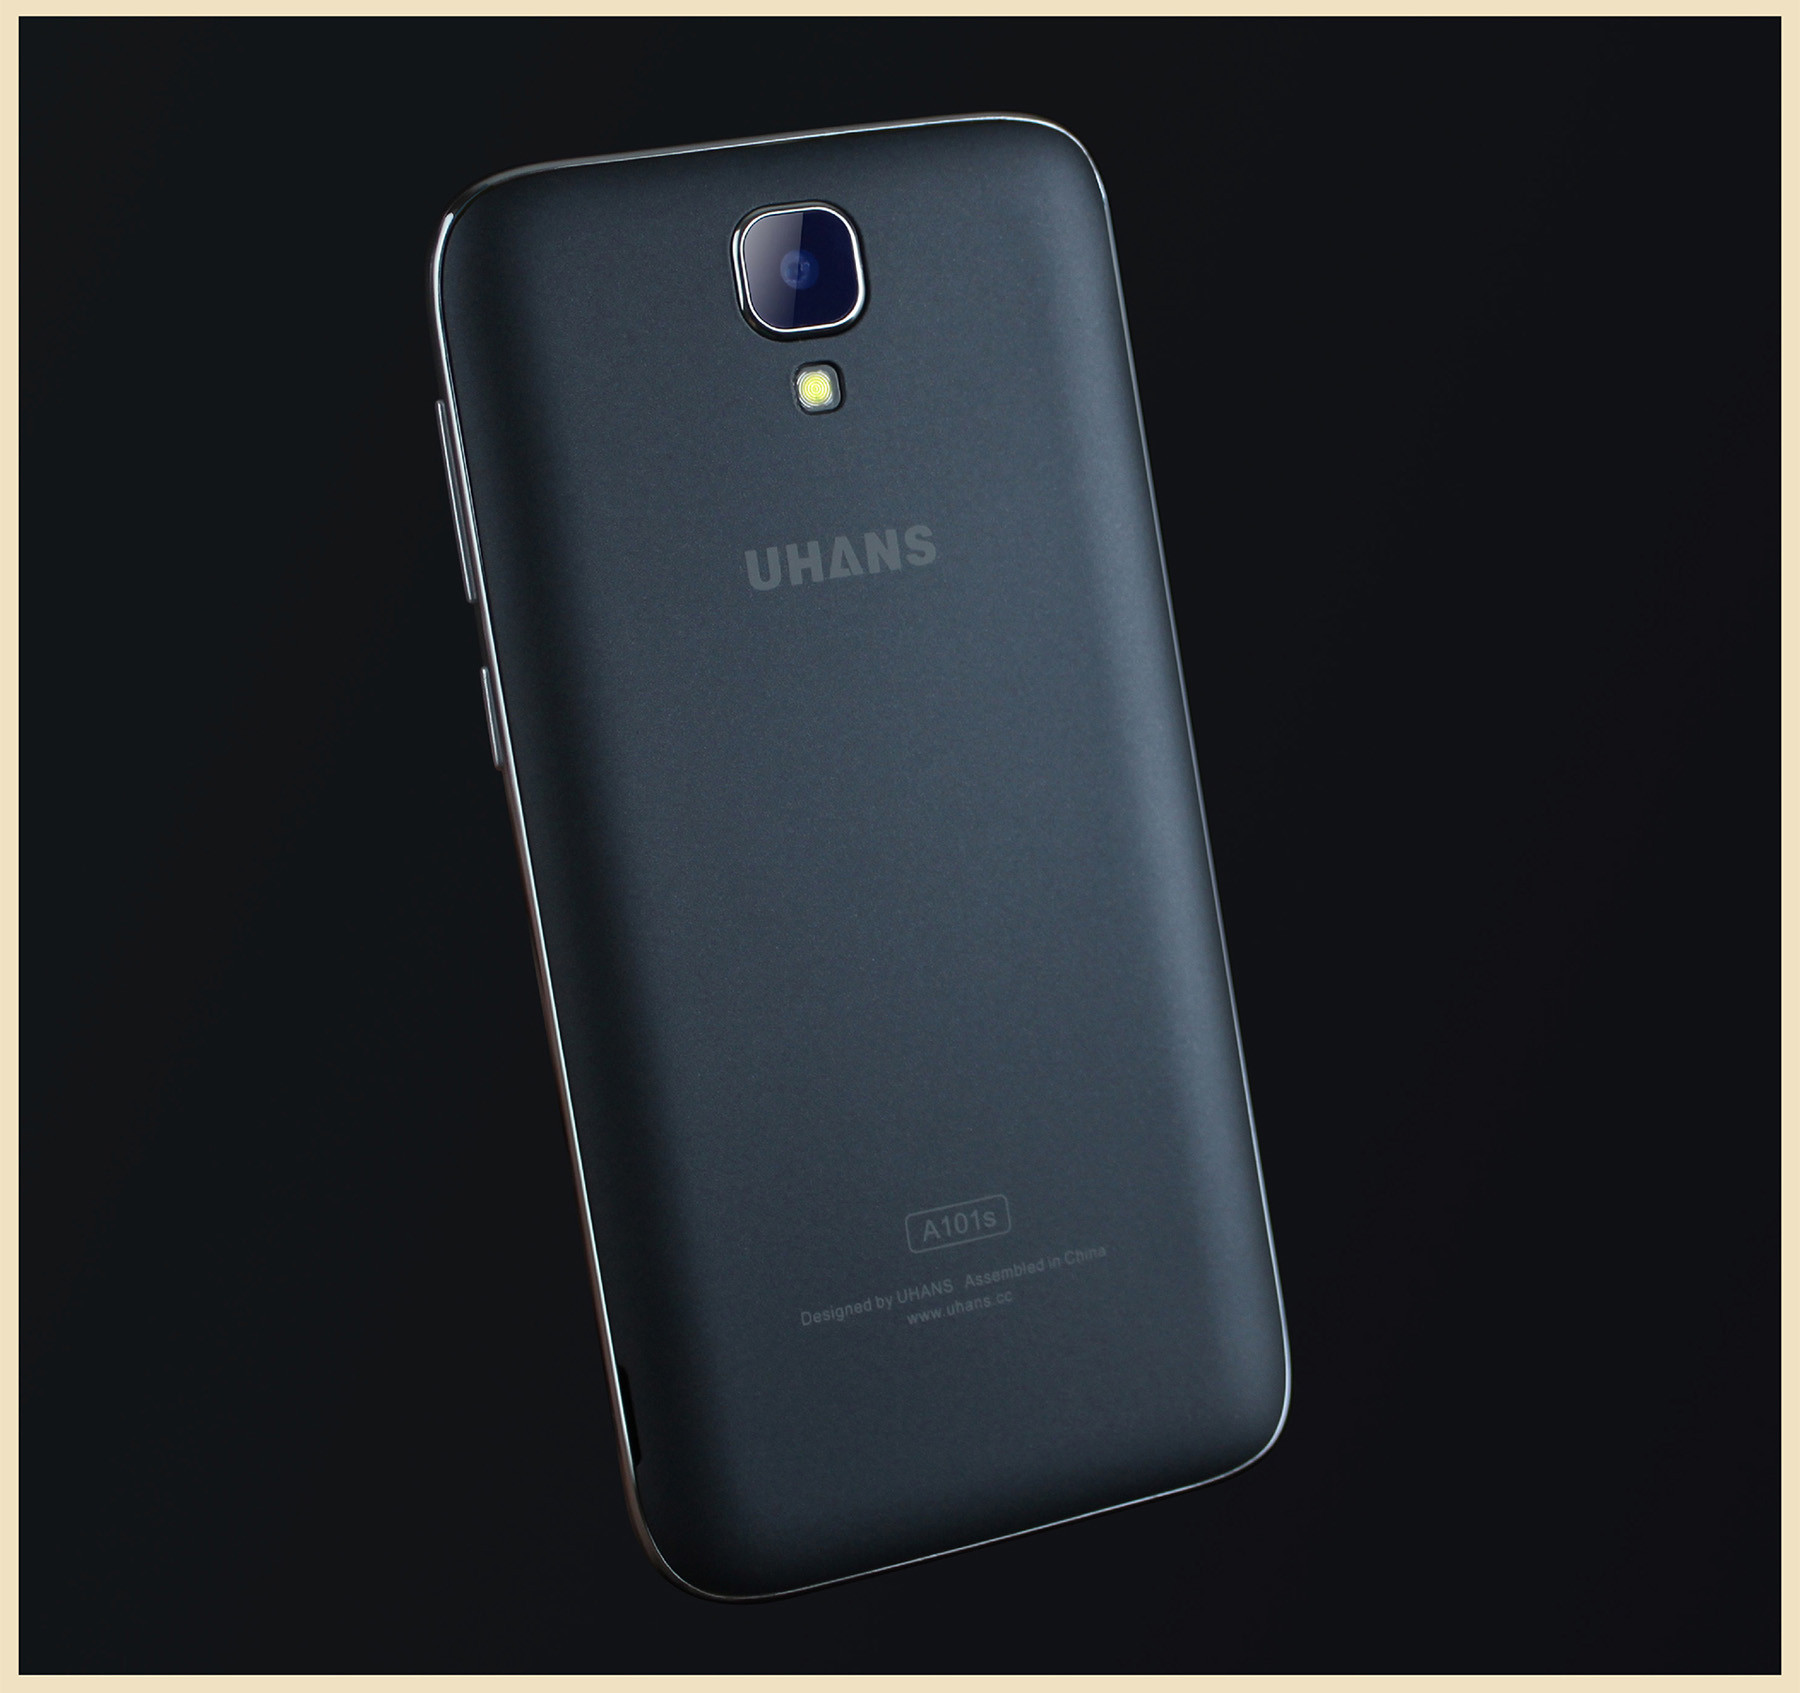 UHANS A101S Android 6.0 5.0 inch 3G Smartphone MTK6580 Quad Core 1.3GHz 2GB RAM 16GB ROM OTA Proximity Sensor Bluetooth 4.0